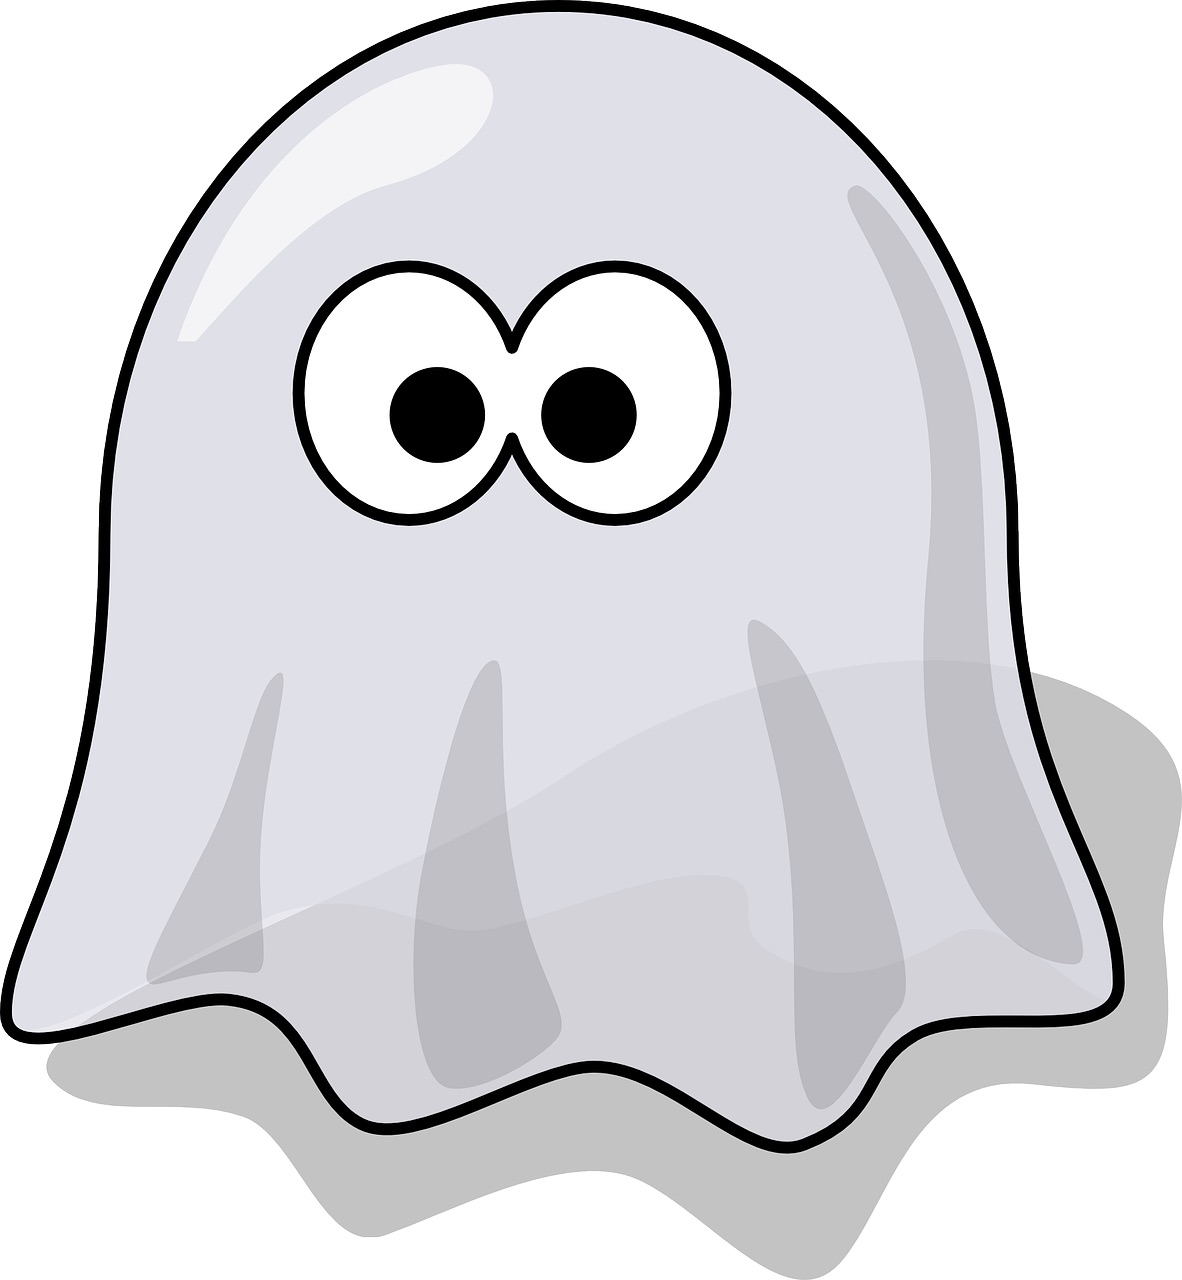 Cartoon of a ghost